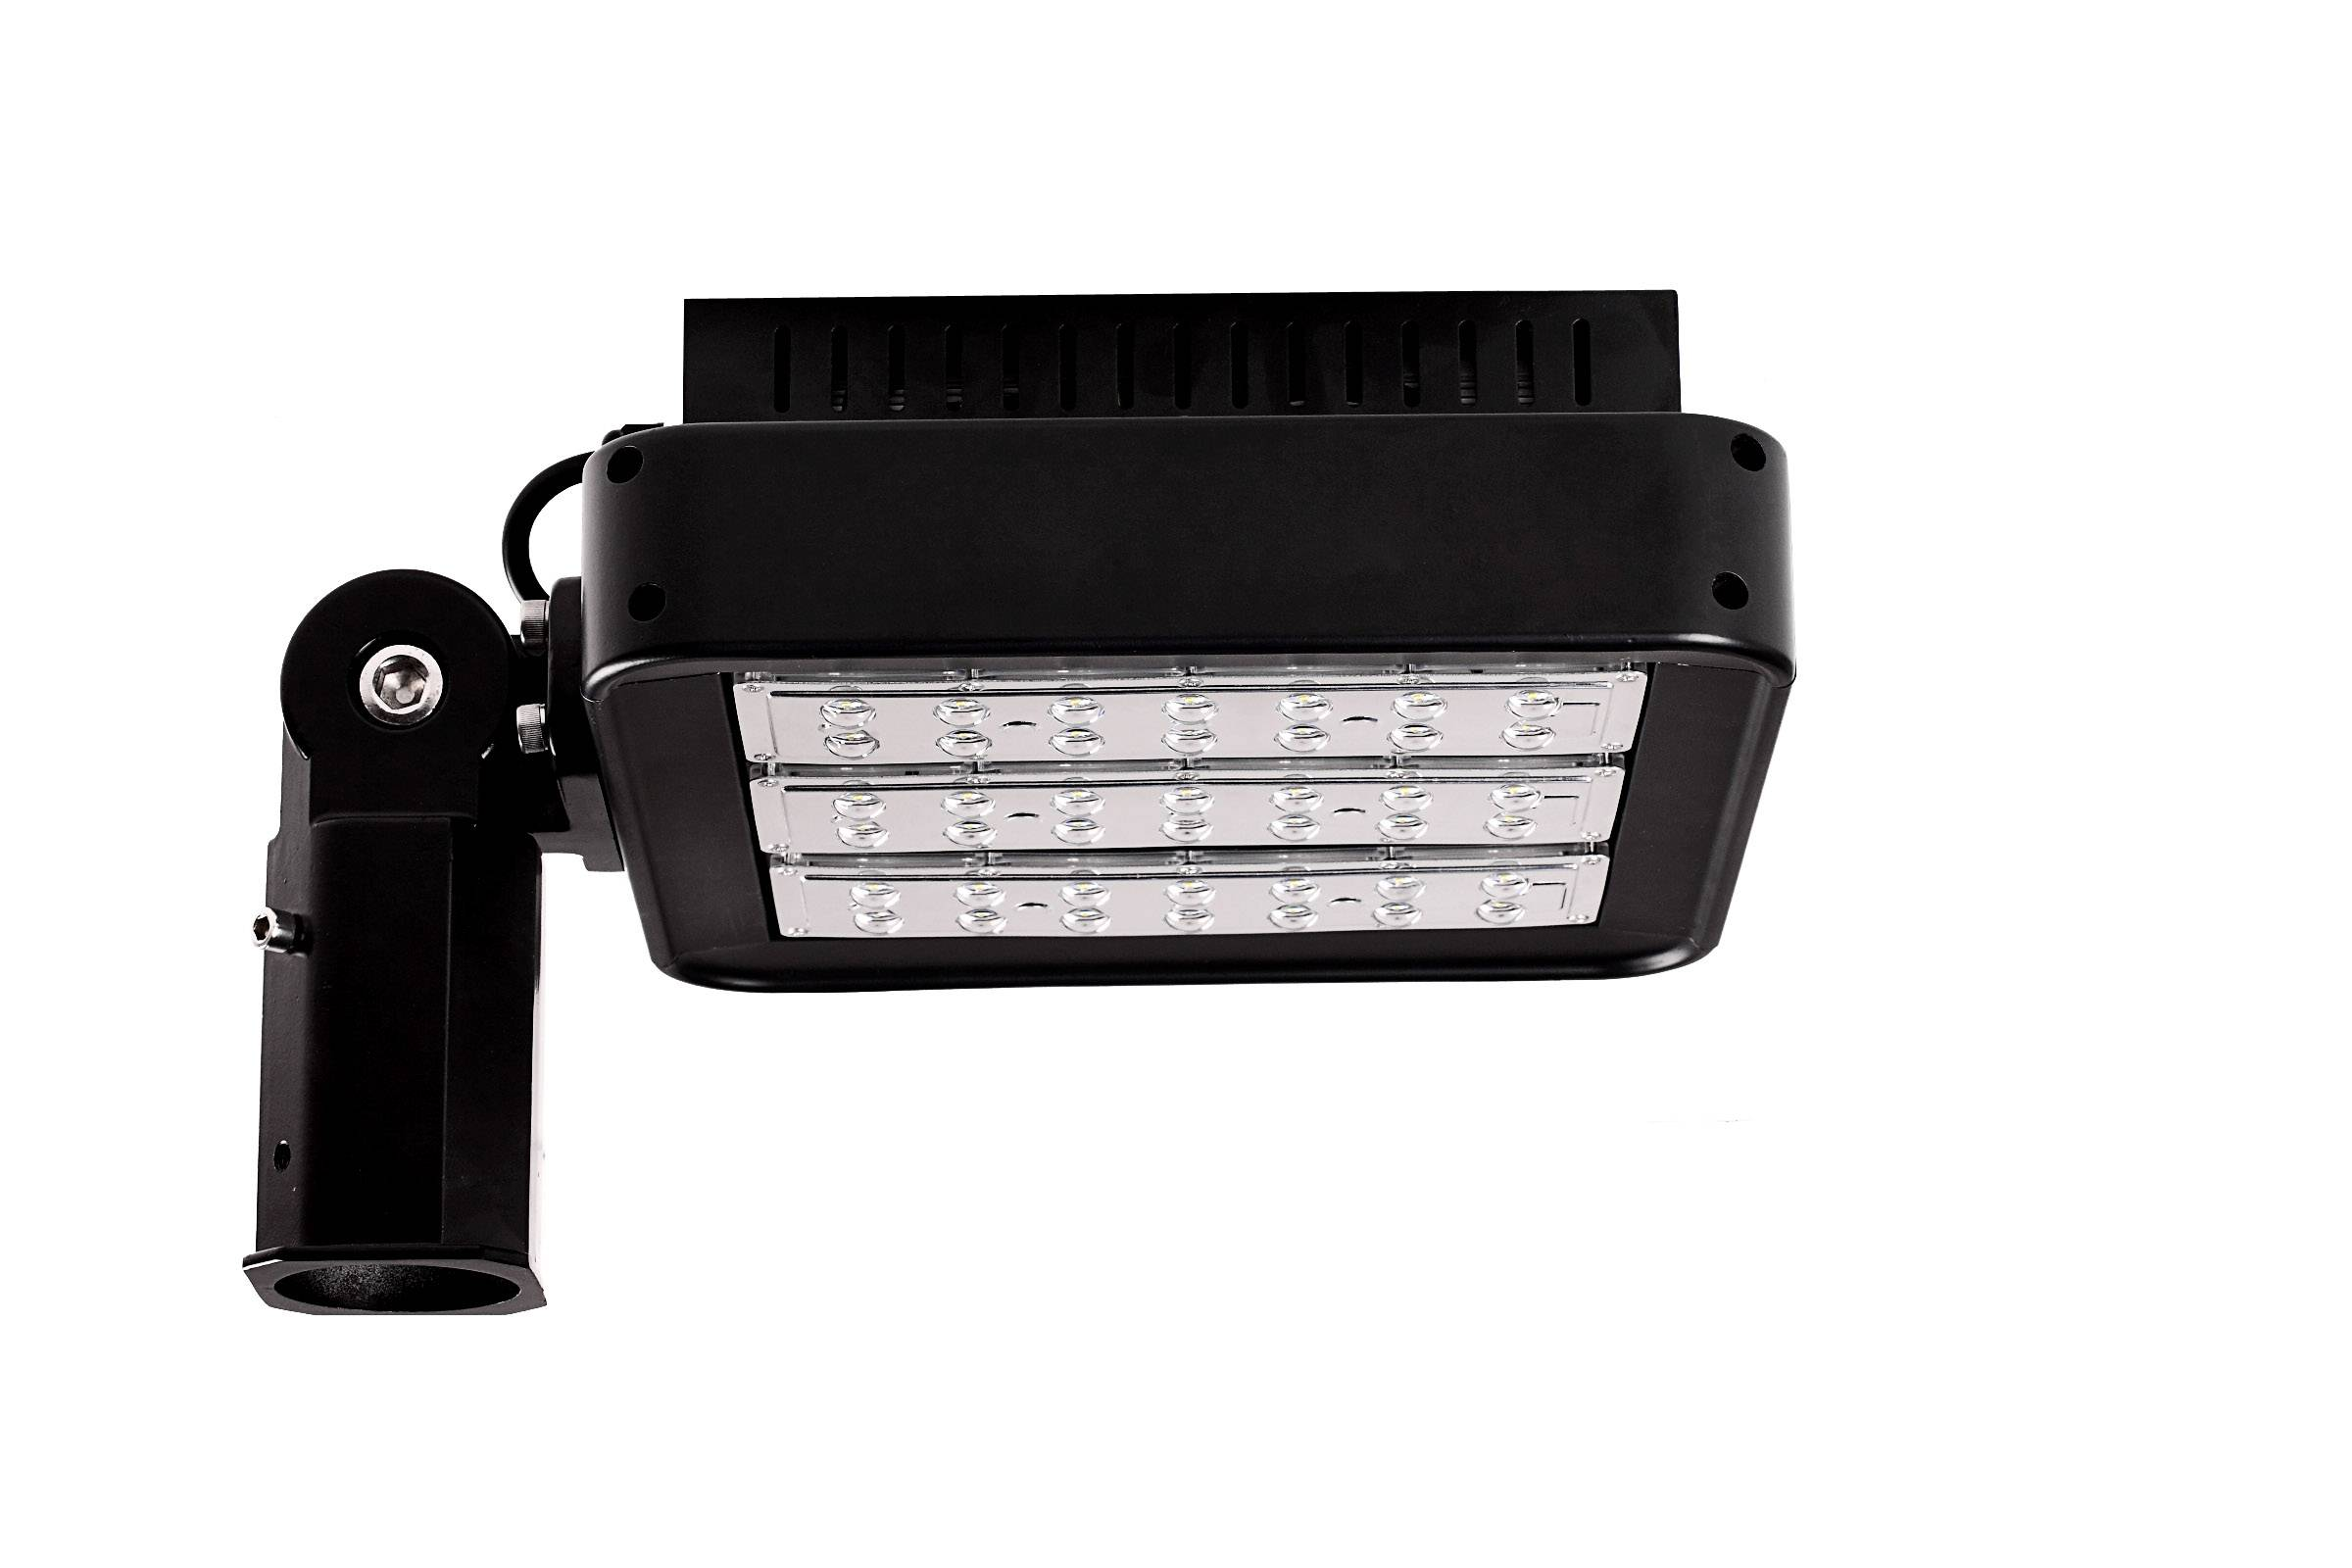 120W LED Parking Garage Light, Parking Lot Lamp, LED Lights